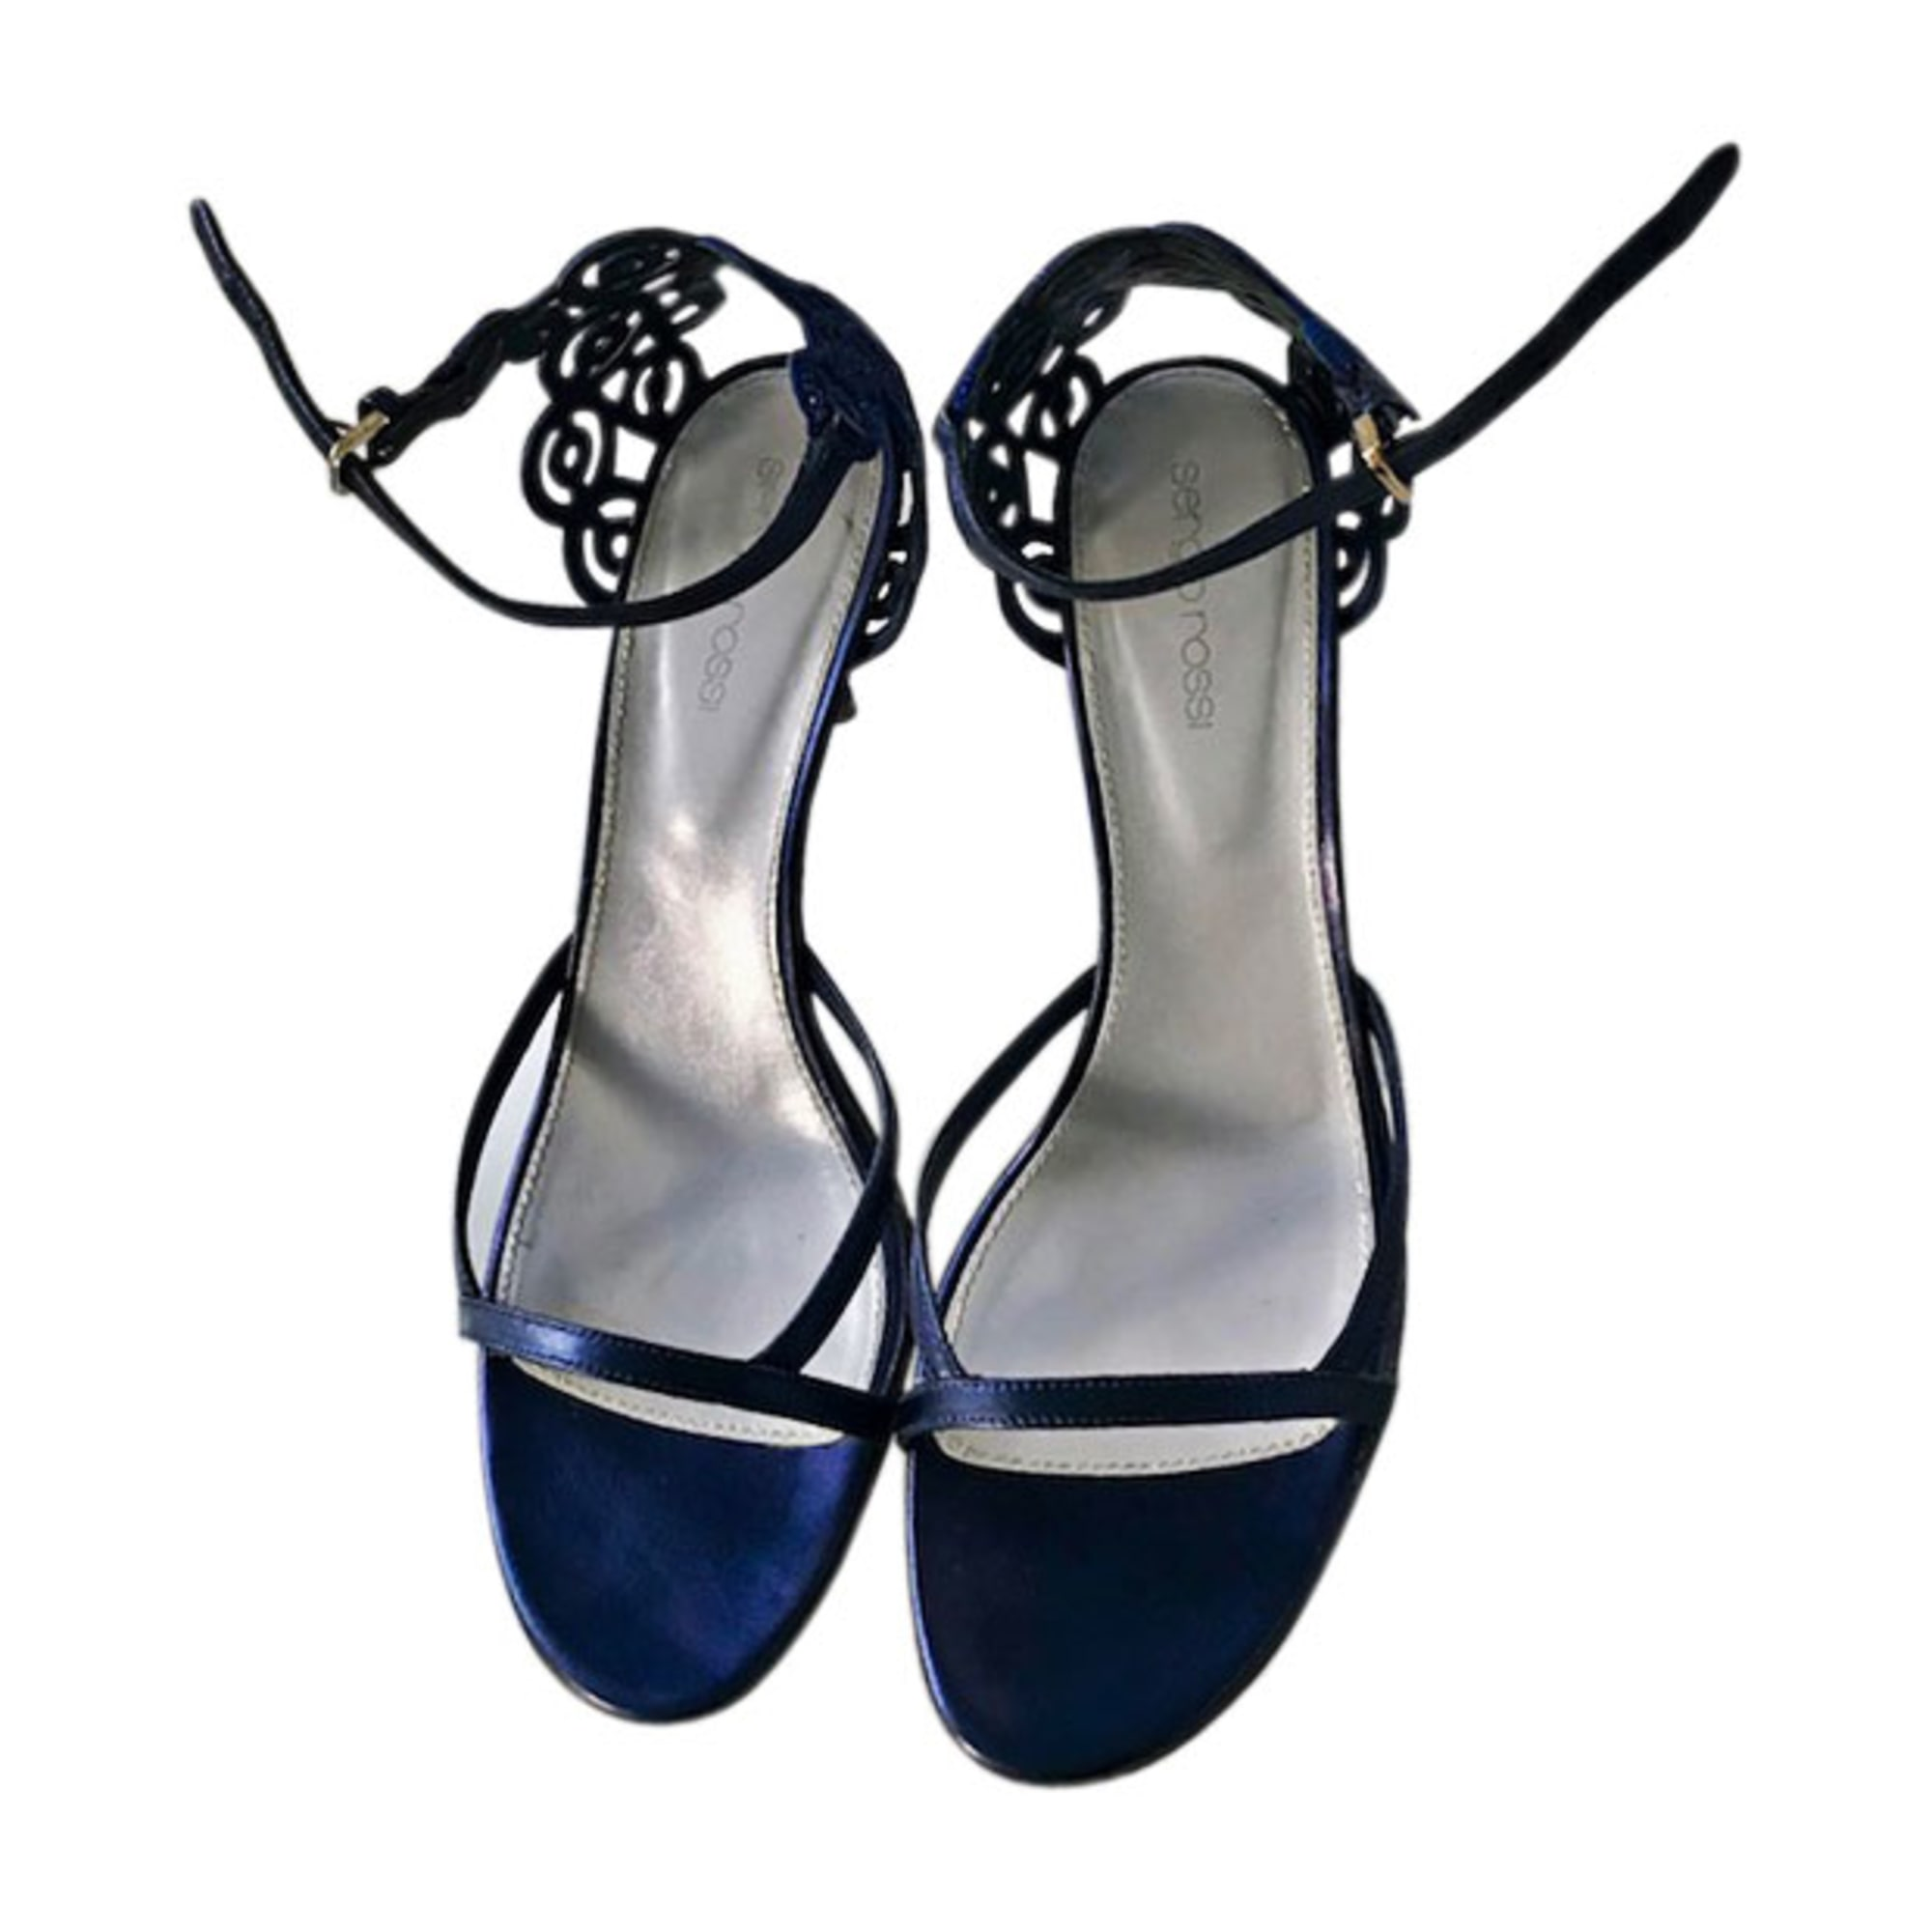 Heeled Sandals SERGIO ROSSI Blue, navy, turquoise